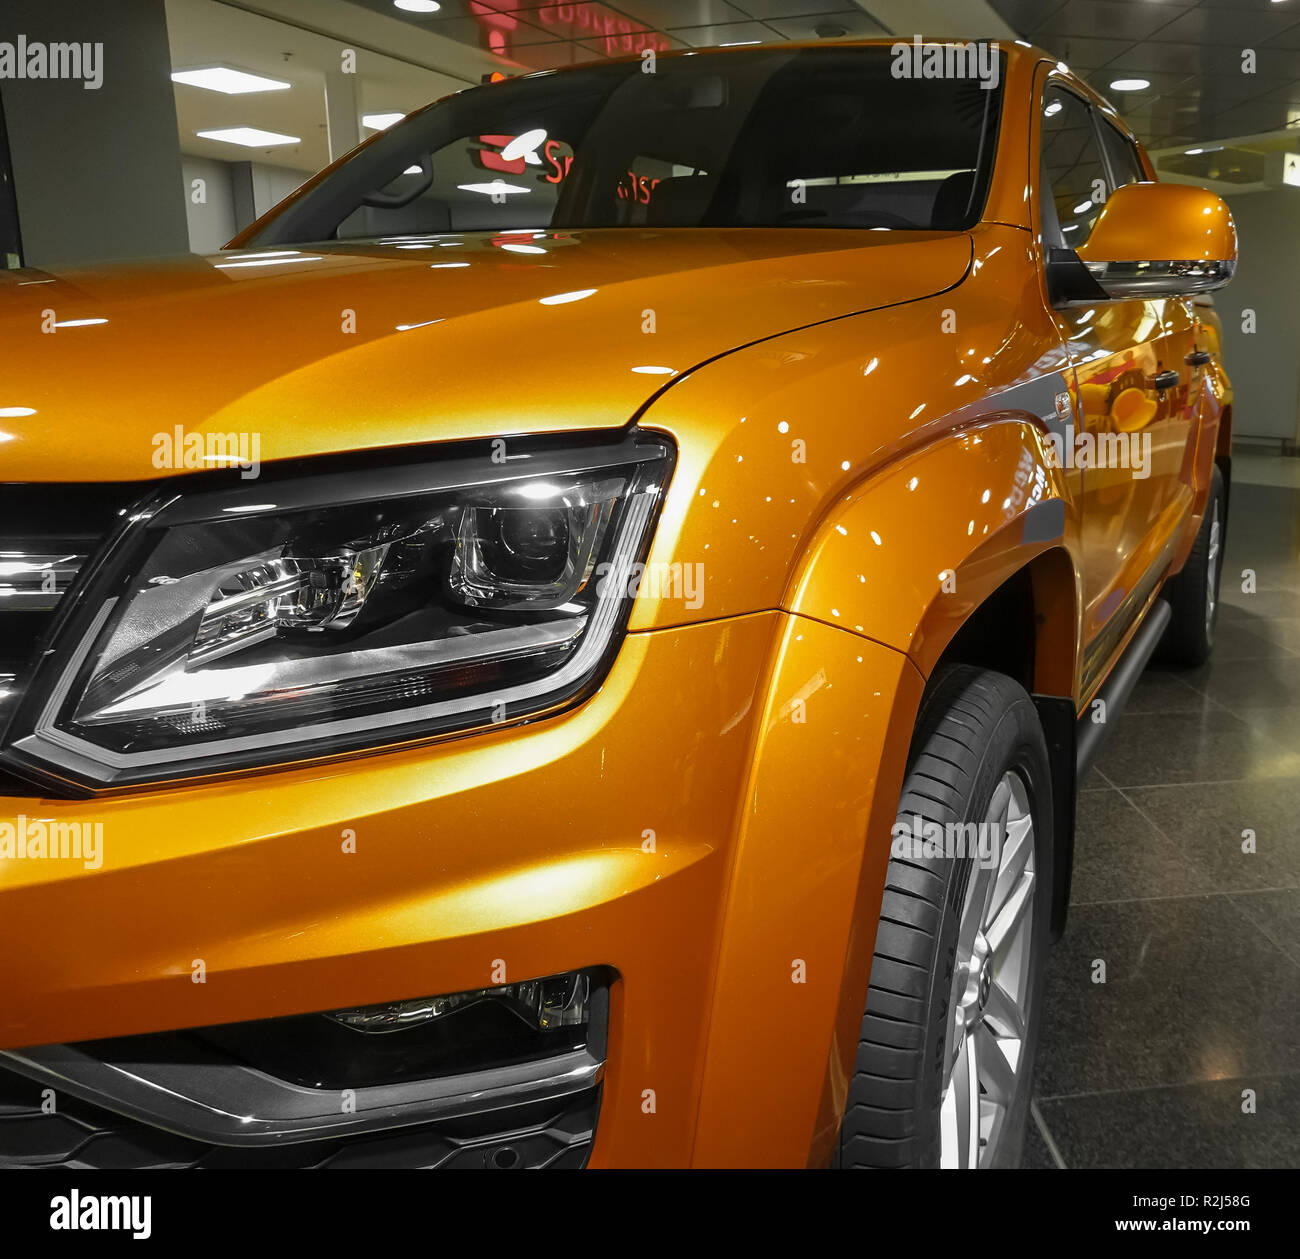 Hannover, Germany, November 19, 2018: Orange colored, almost golden VW Volkswagen Amarok at an exhibition in the airport of Hannover - Stock Image